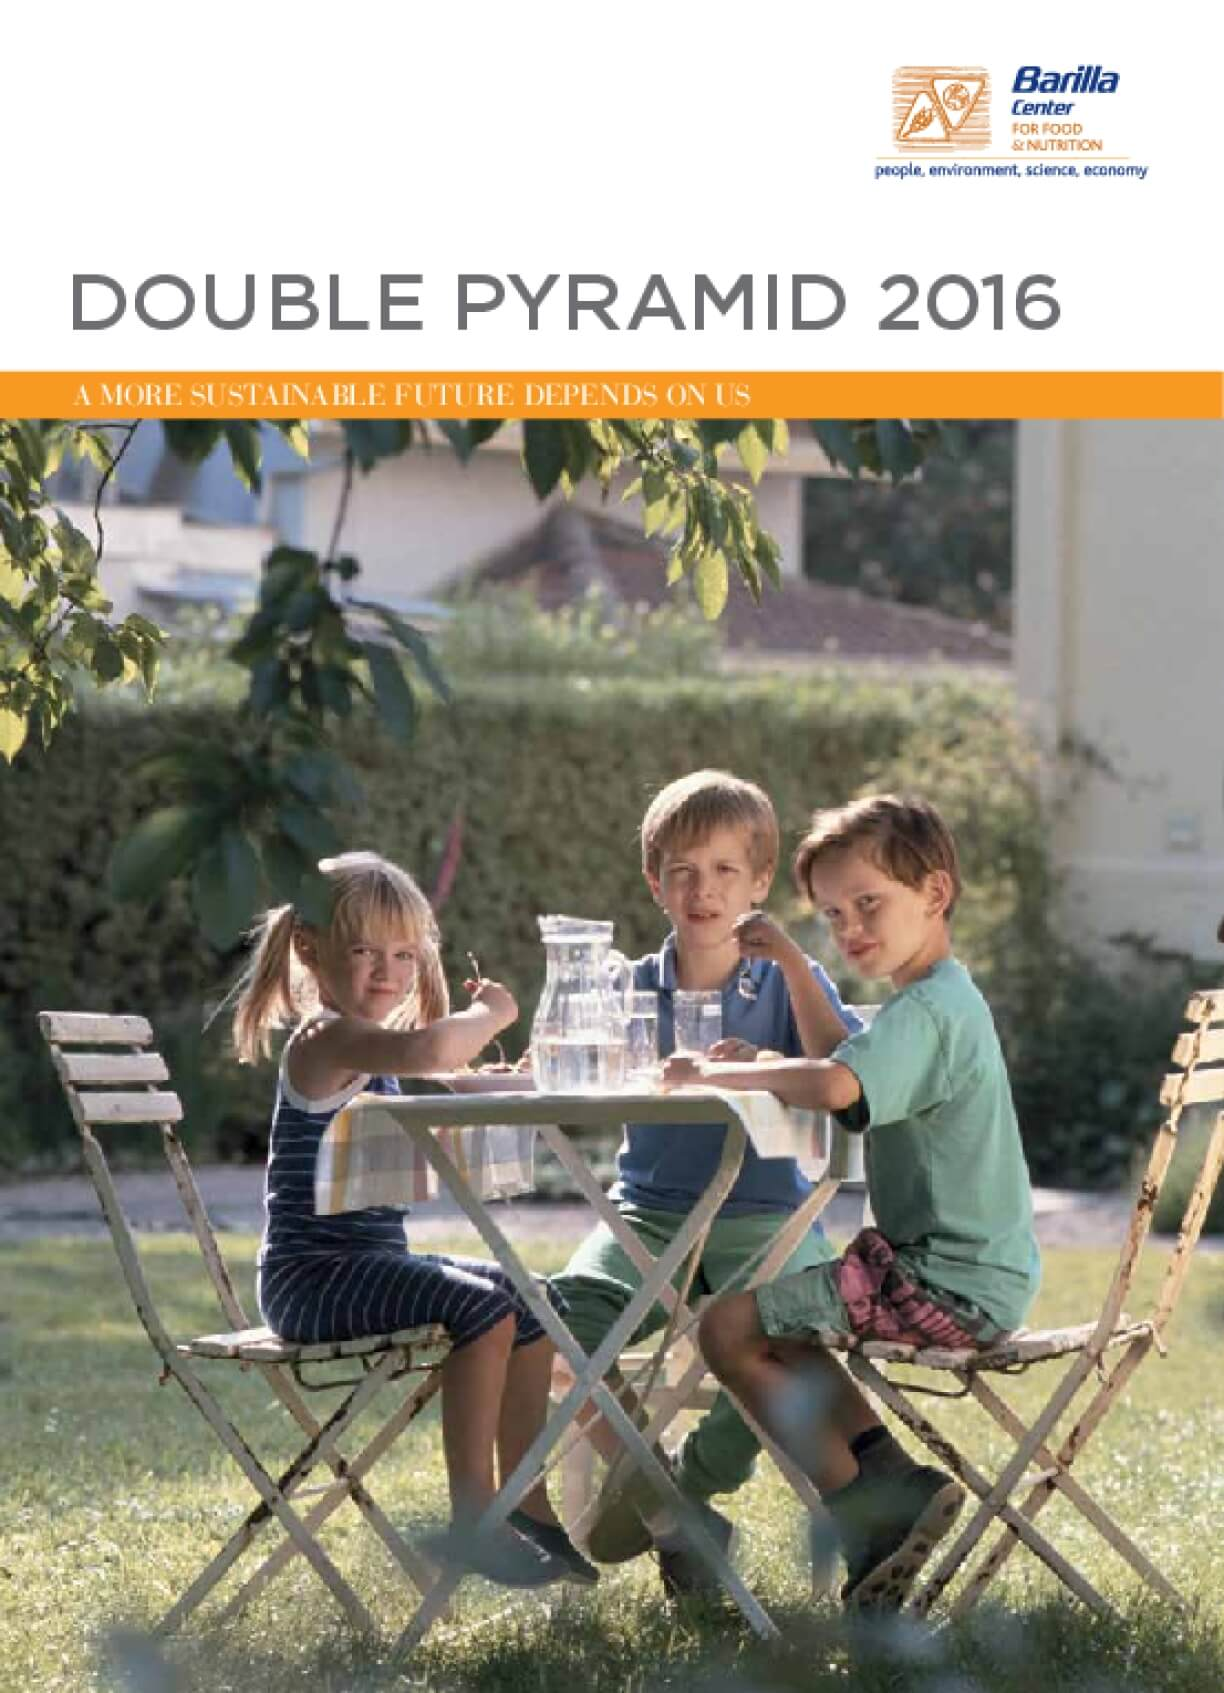 Double Pyramid 2016 : A More Sustainable Future Depends on Us